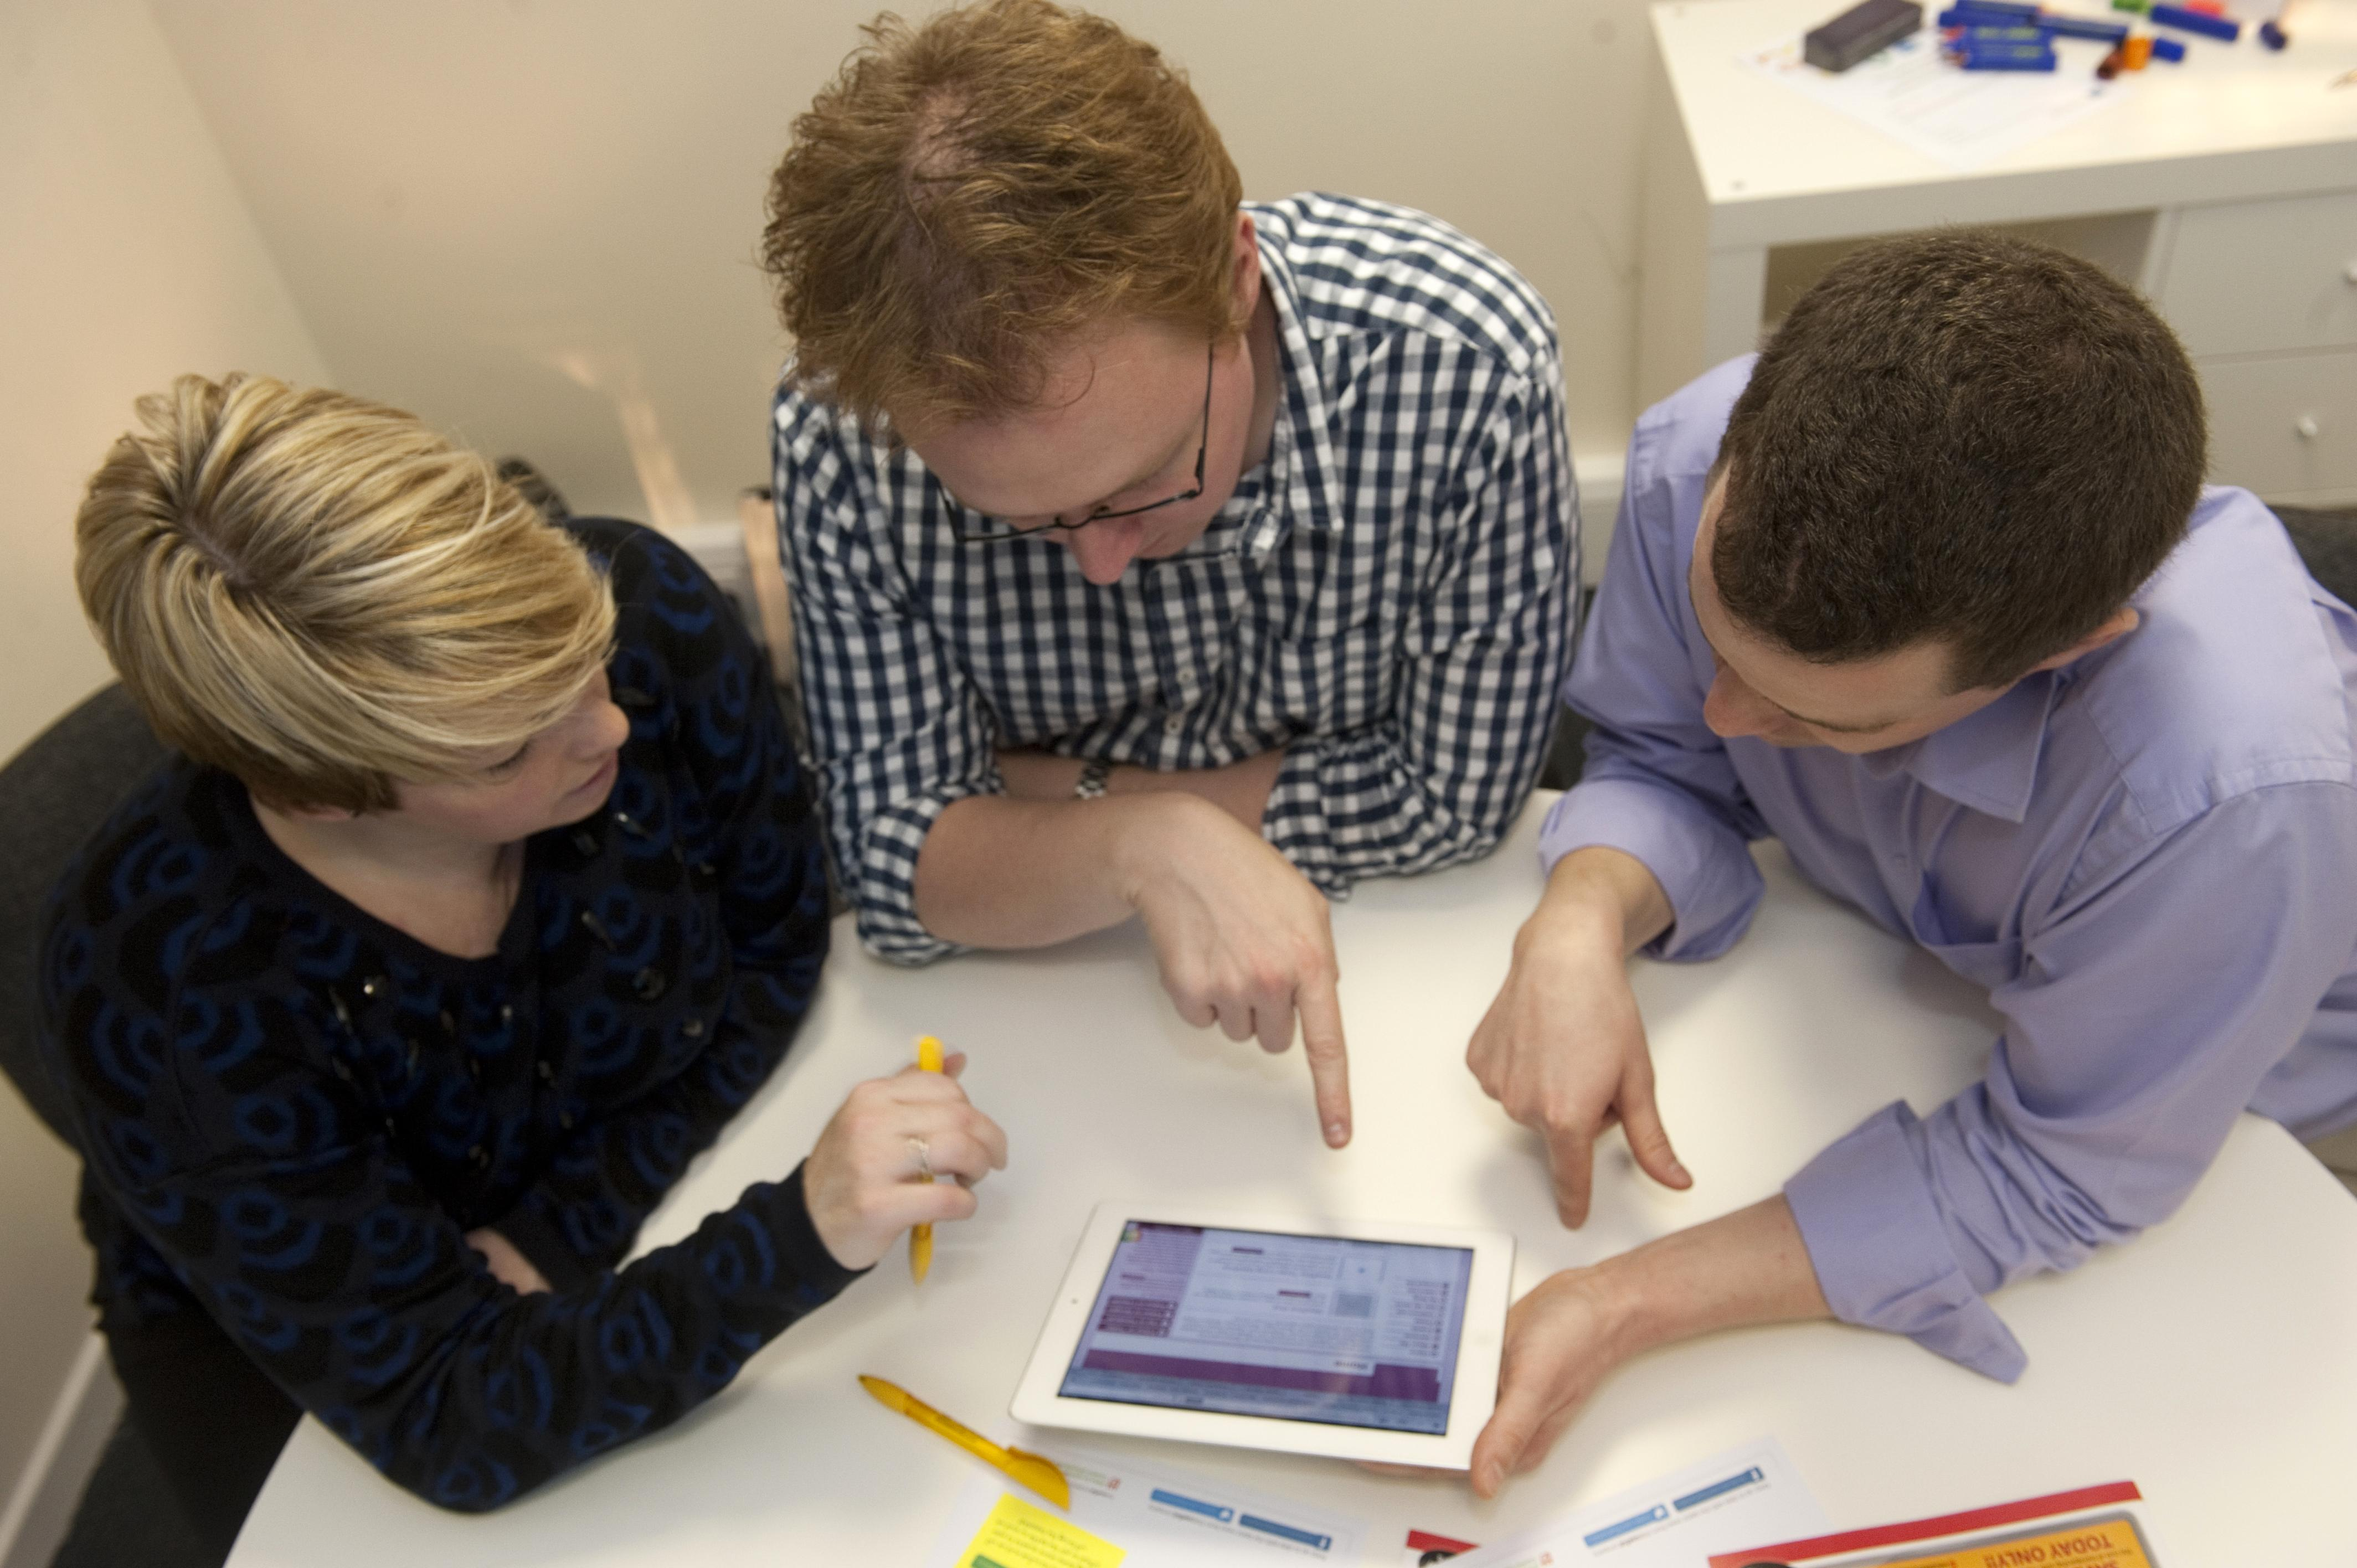 Three people using a tablet device